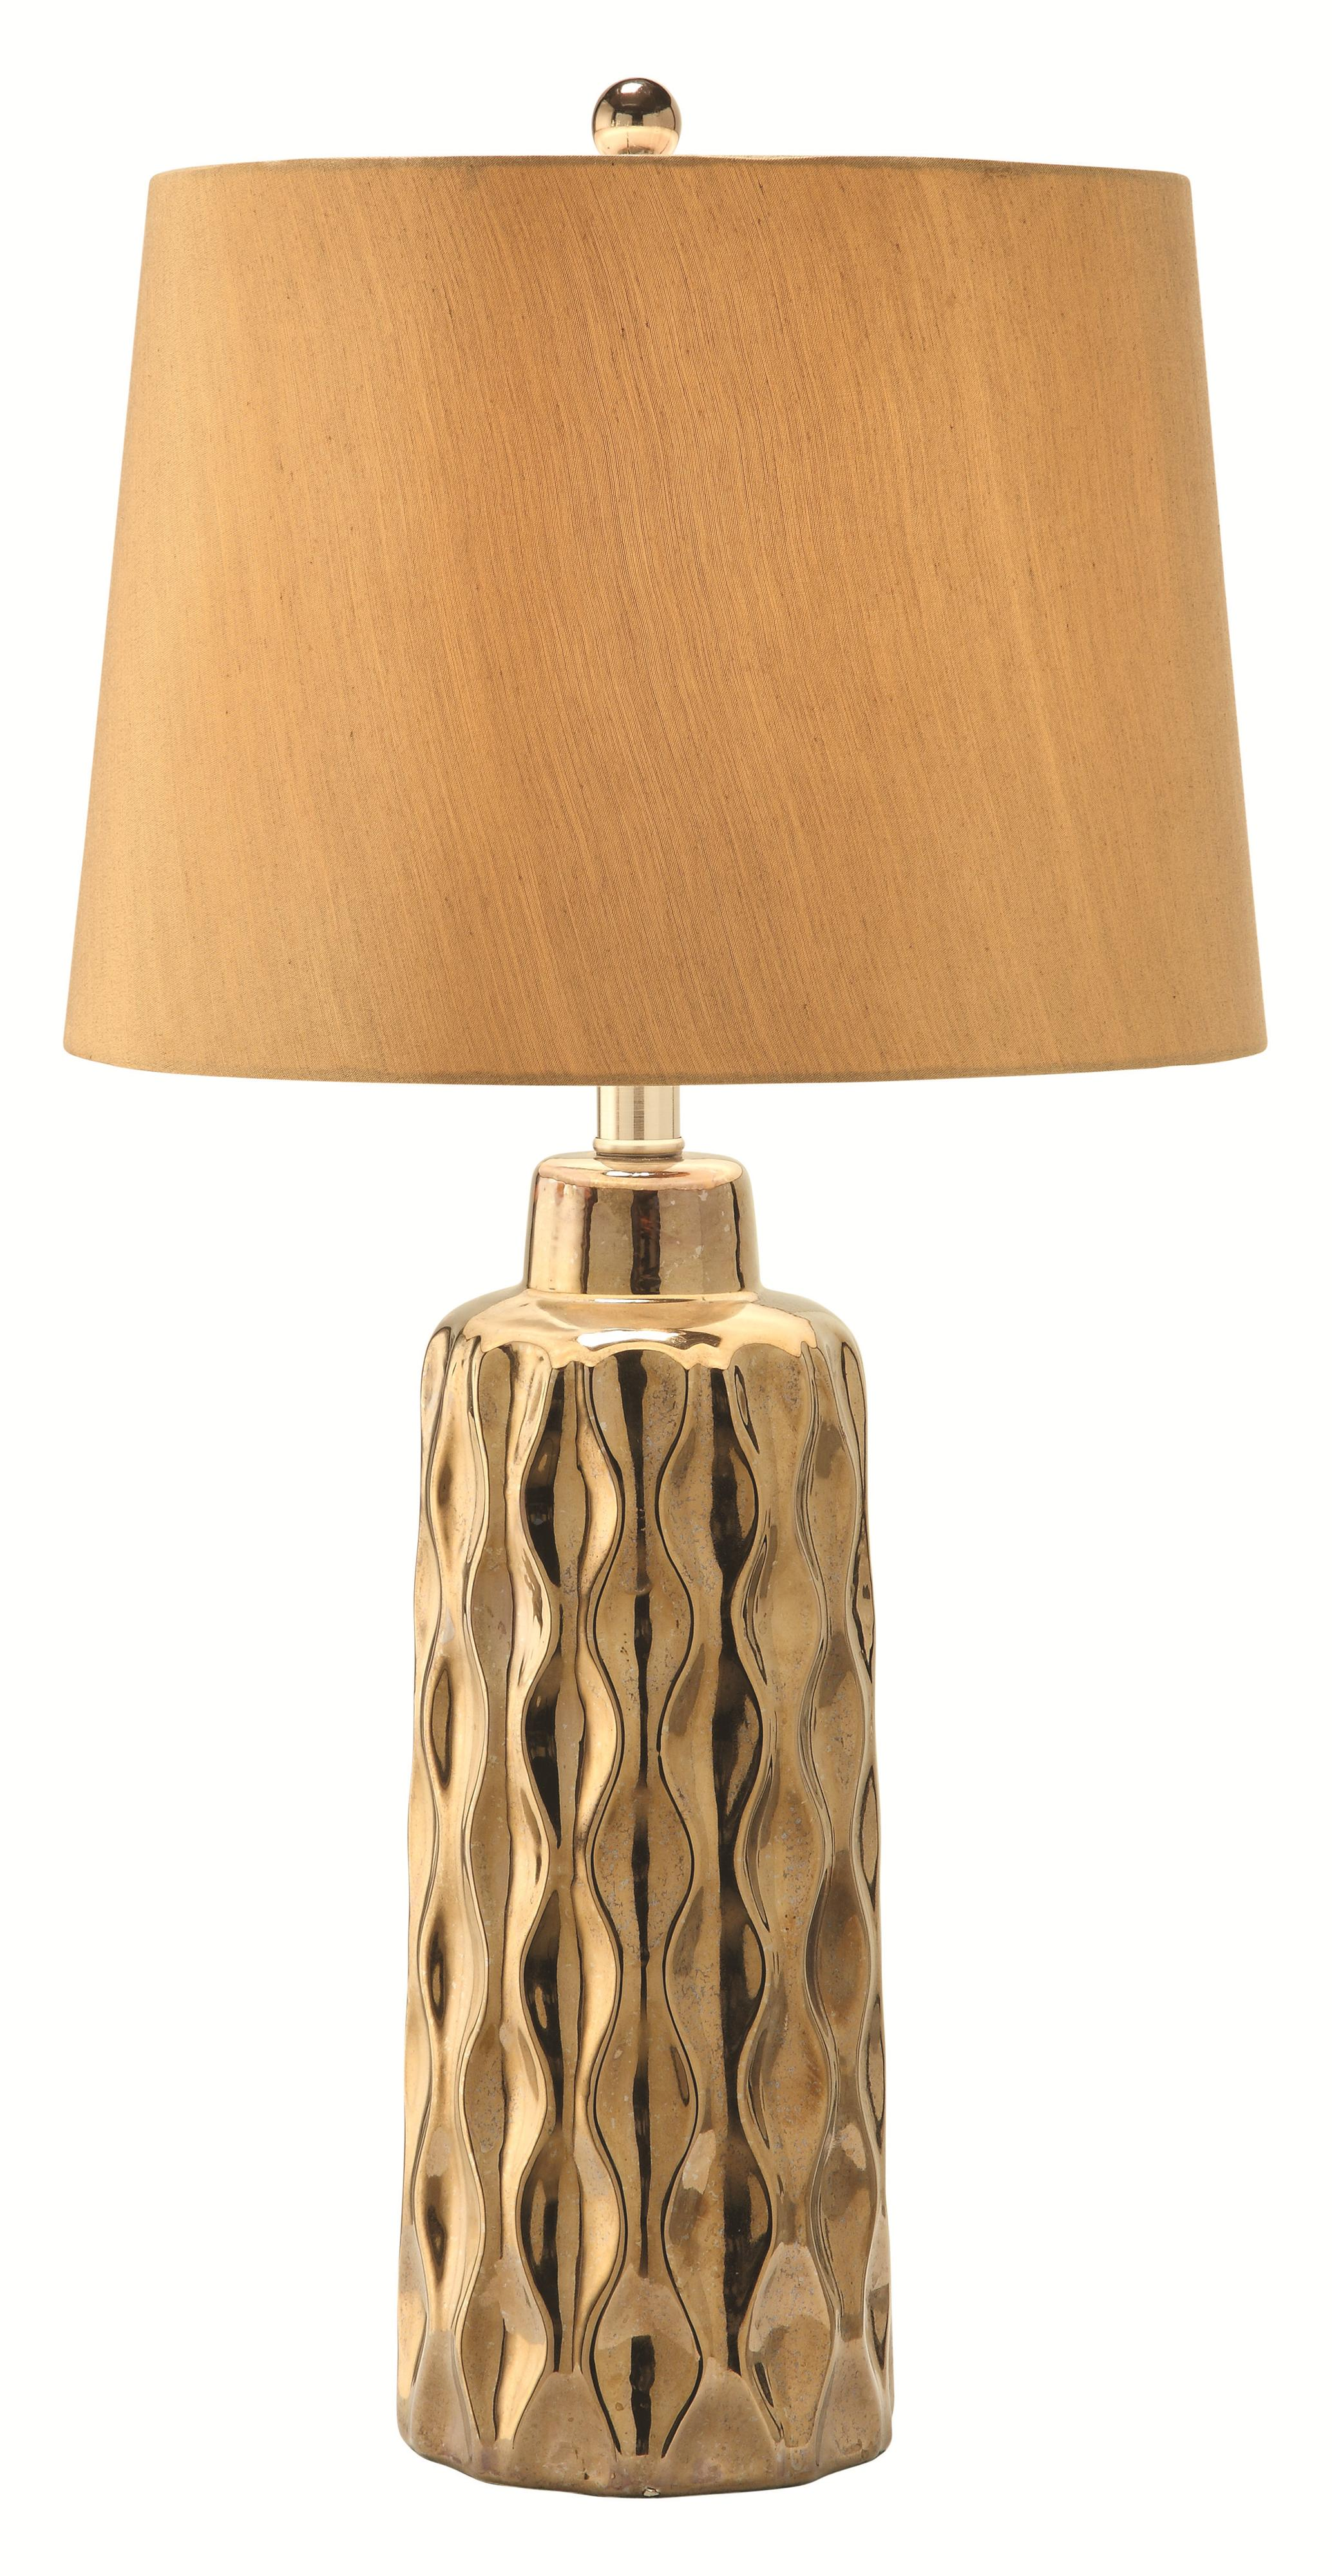 Coaster Table Lamps Table Lamp - Item Number: 901517